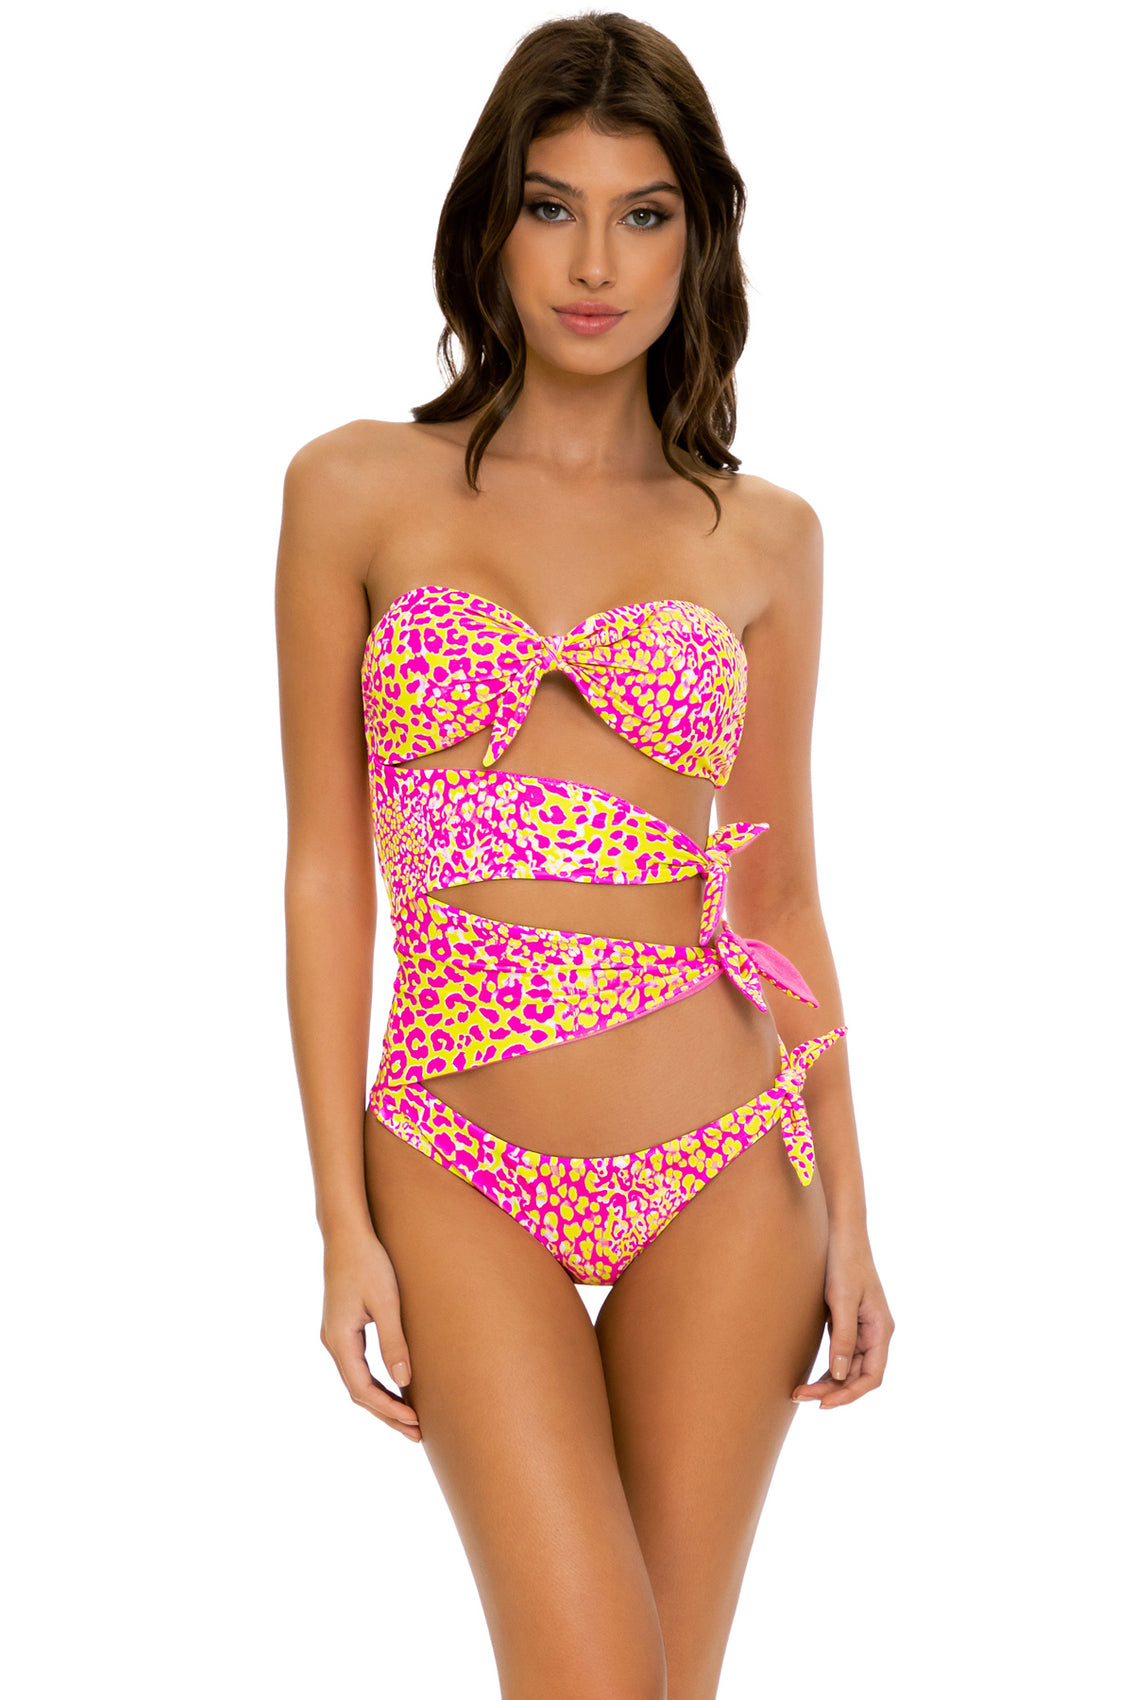 WILD SWEETHEART - Knot Bow Tie Side Bandeau One Piece • Multicolor